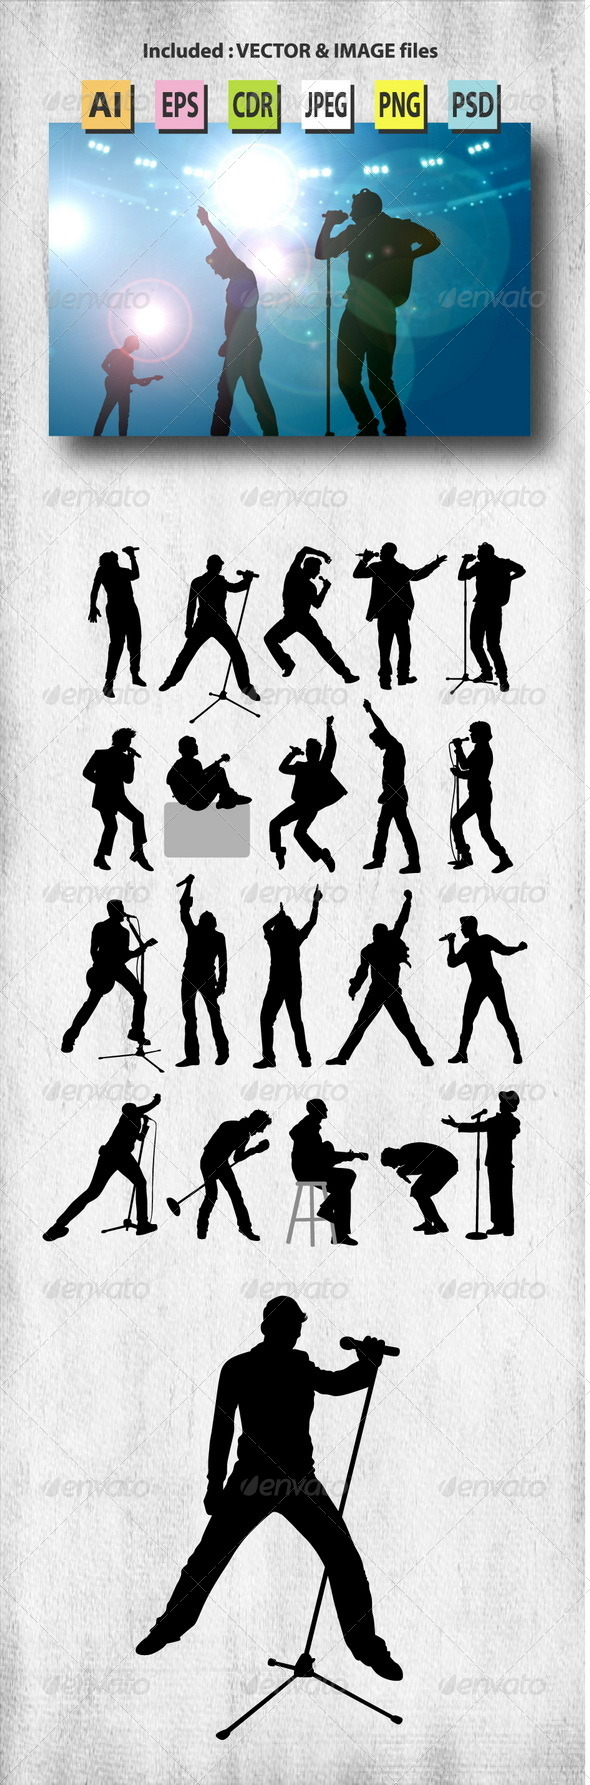 GraphicRiver Male Singer Silhouettes 7974842